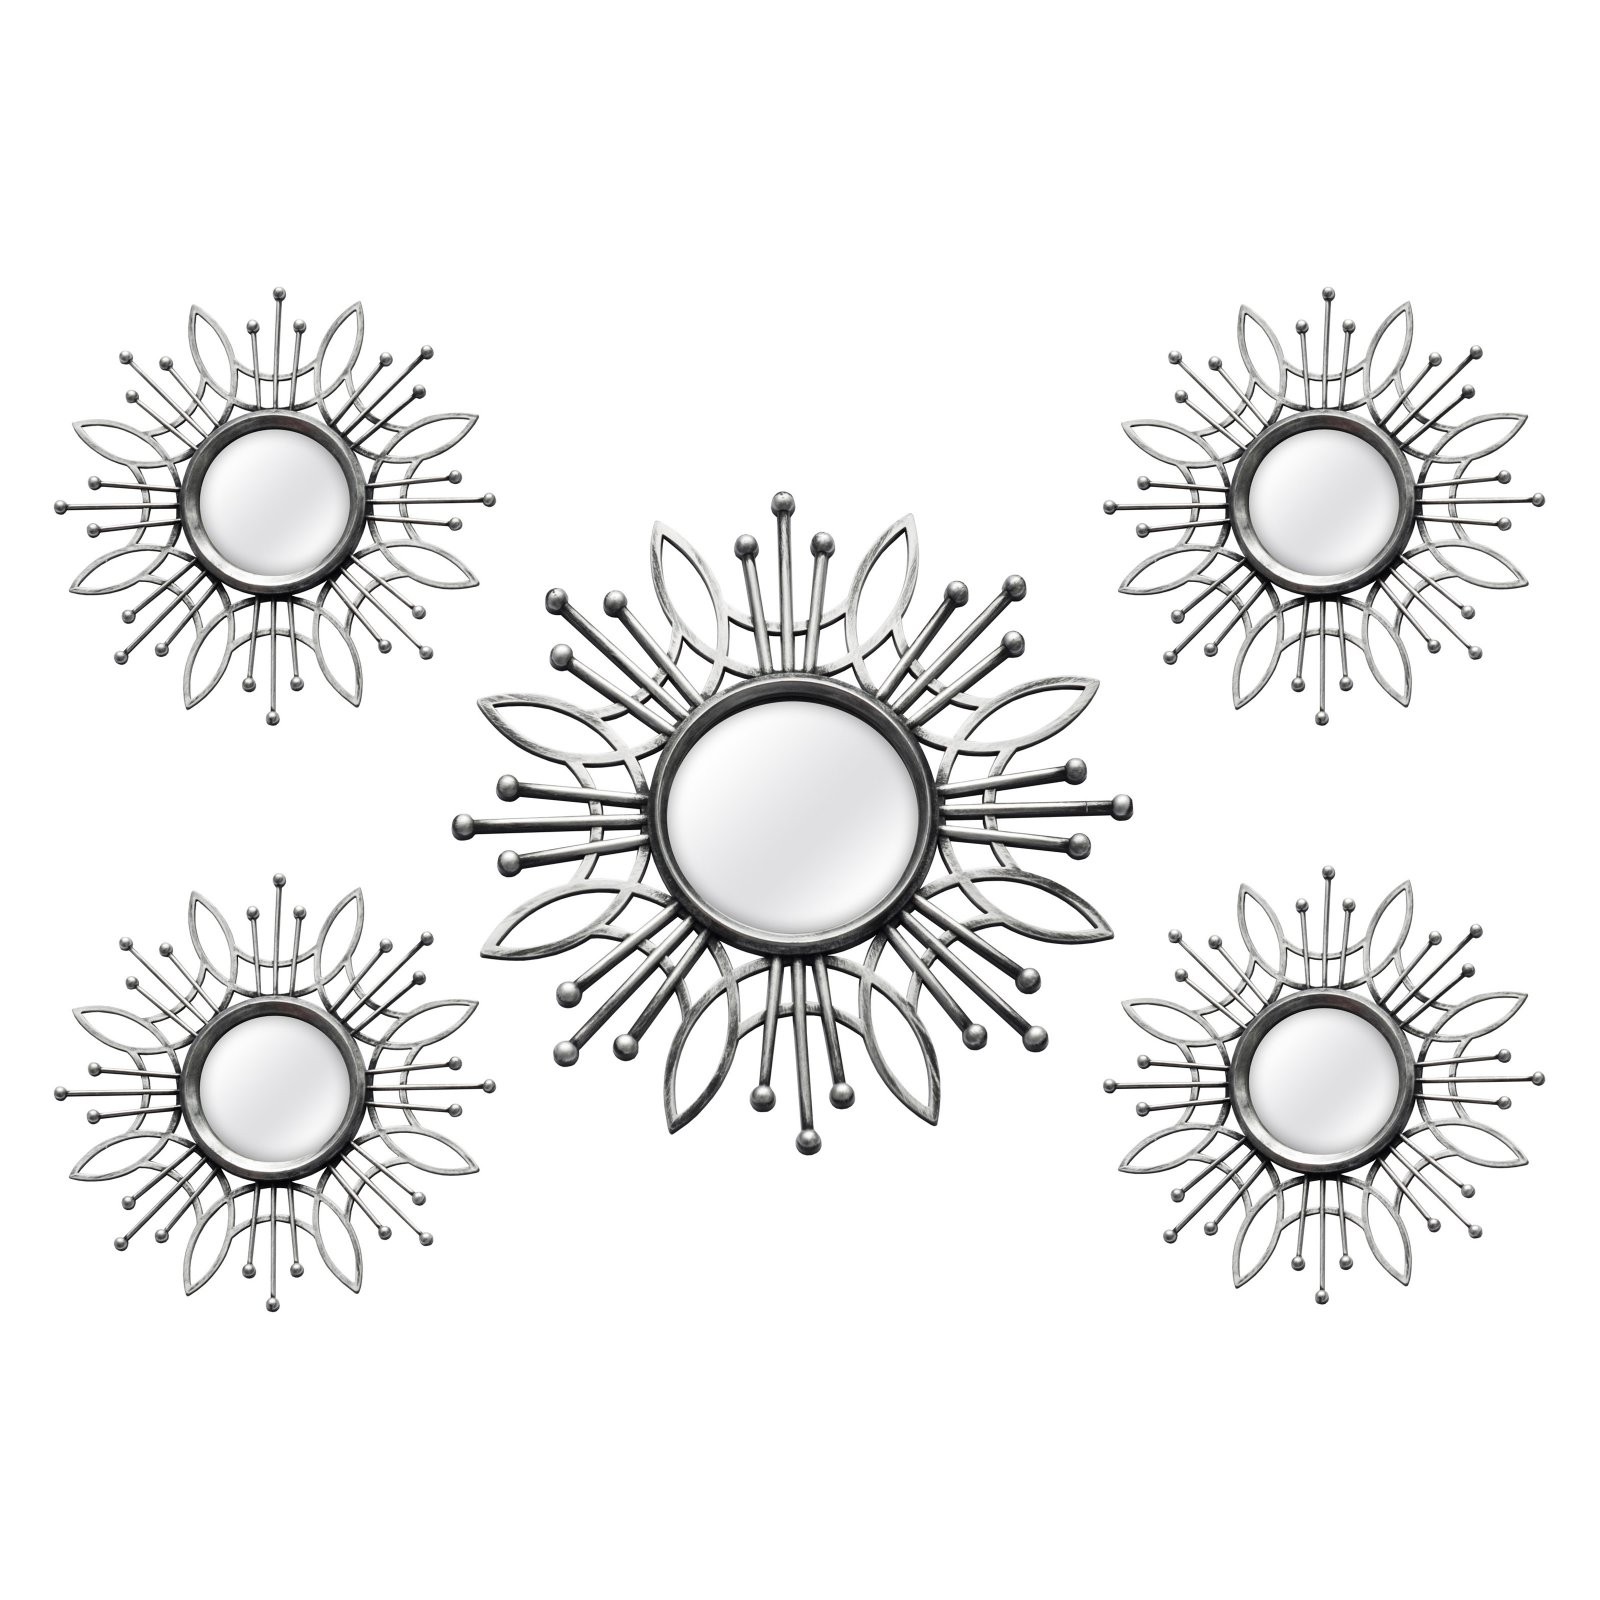 Stratton Home Decor 5-Piece Silver Burst Wall Mirror